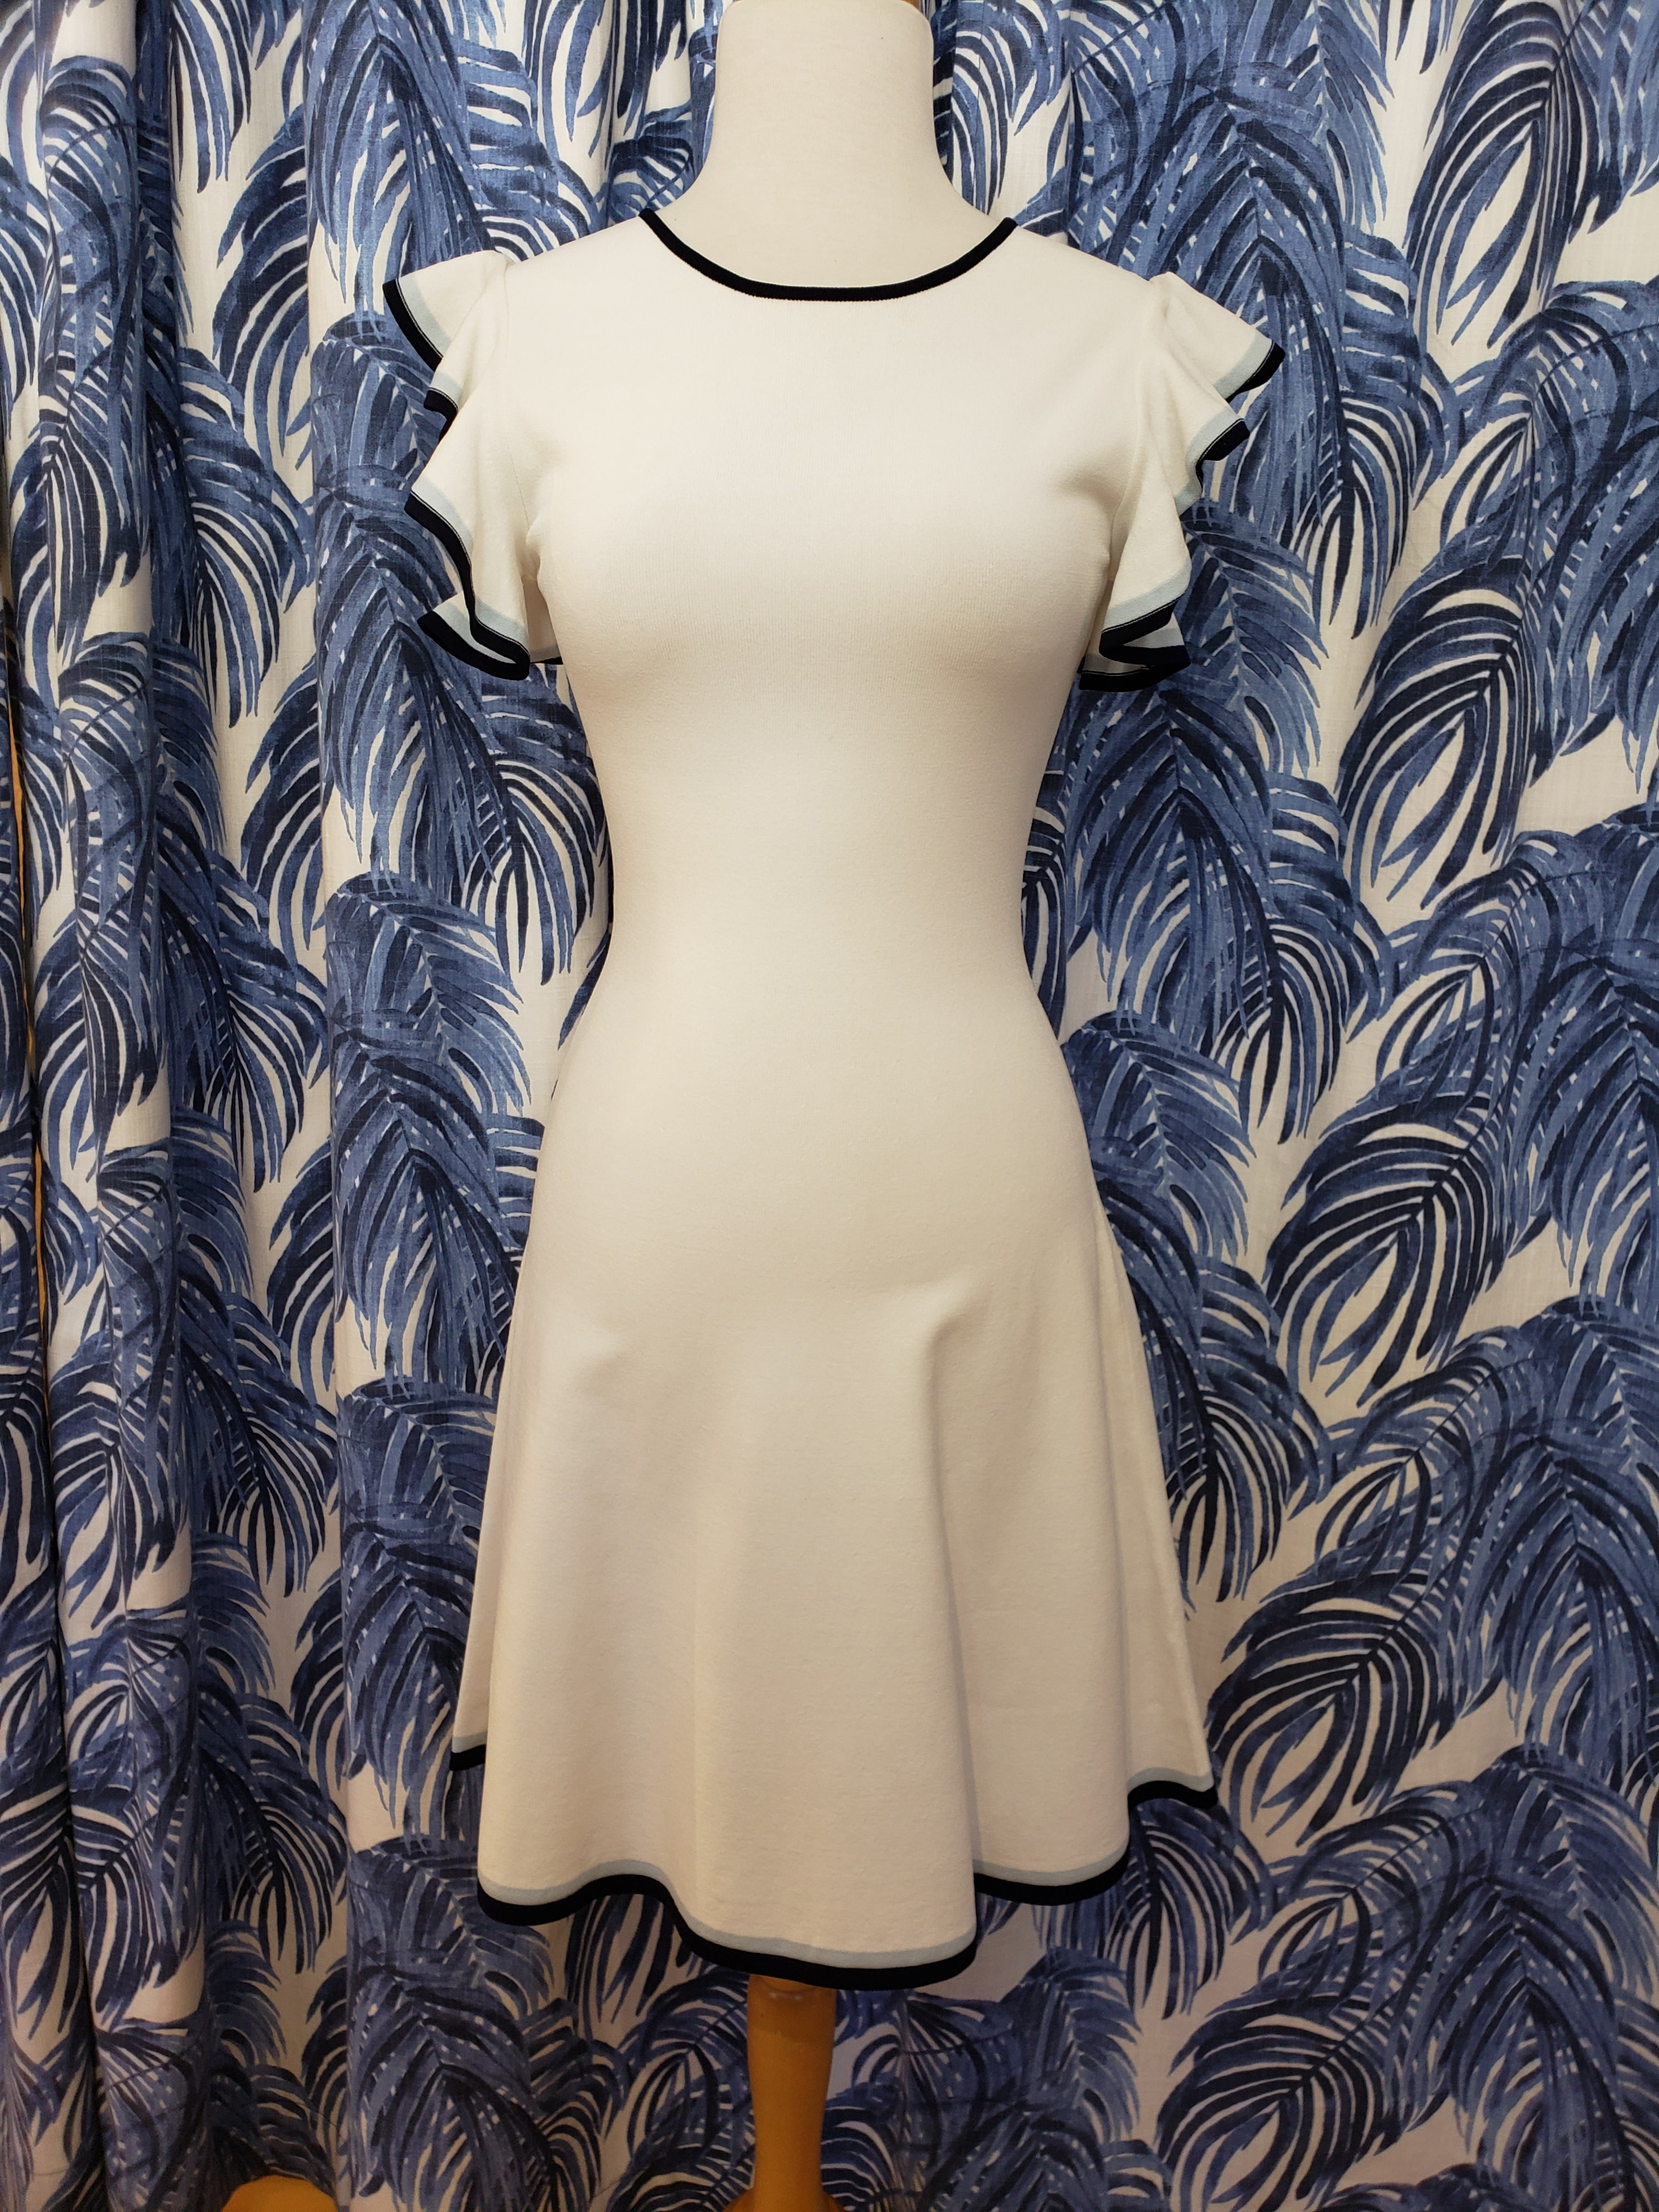 Saya Dress in White/Navy